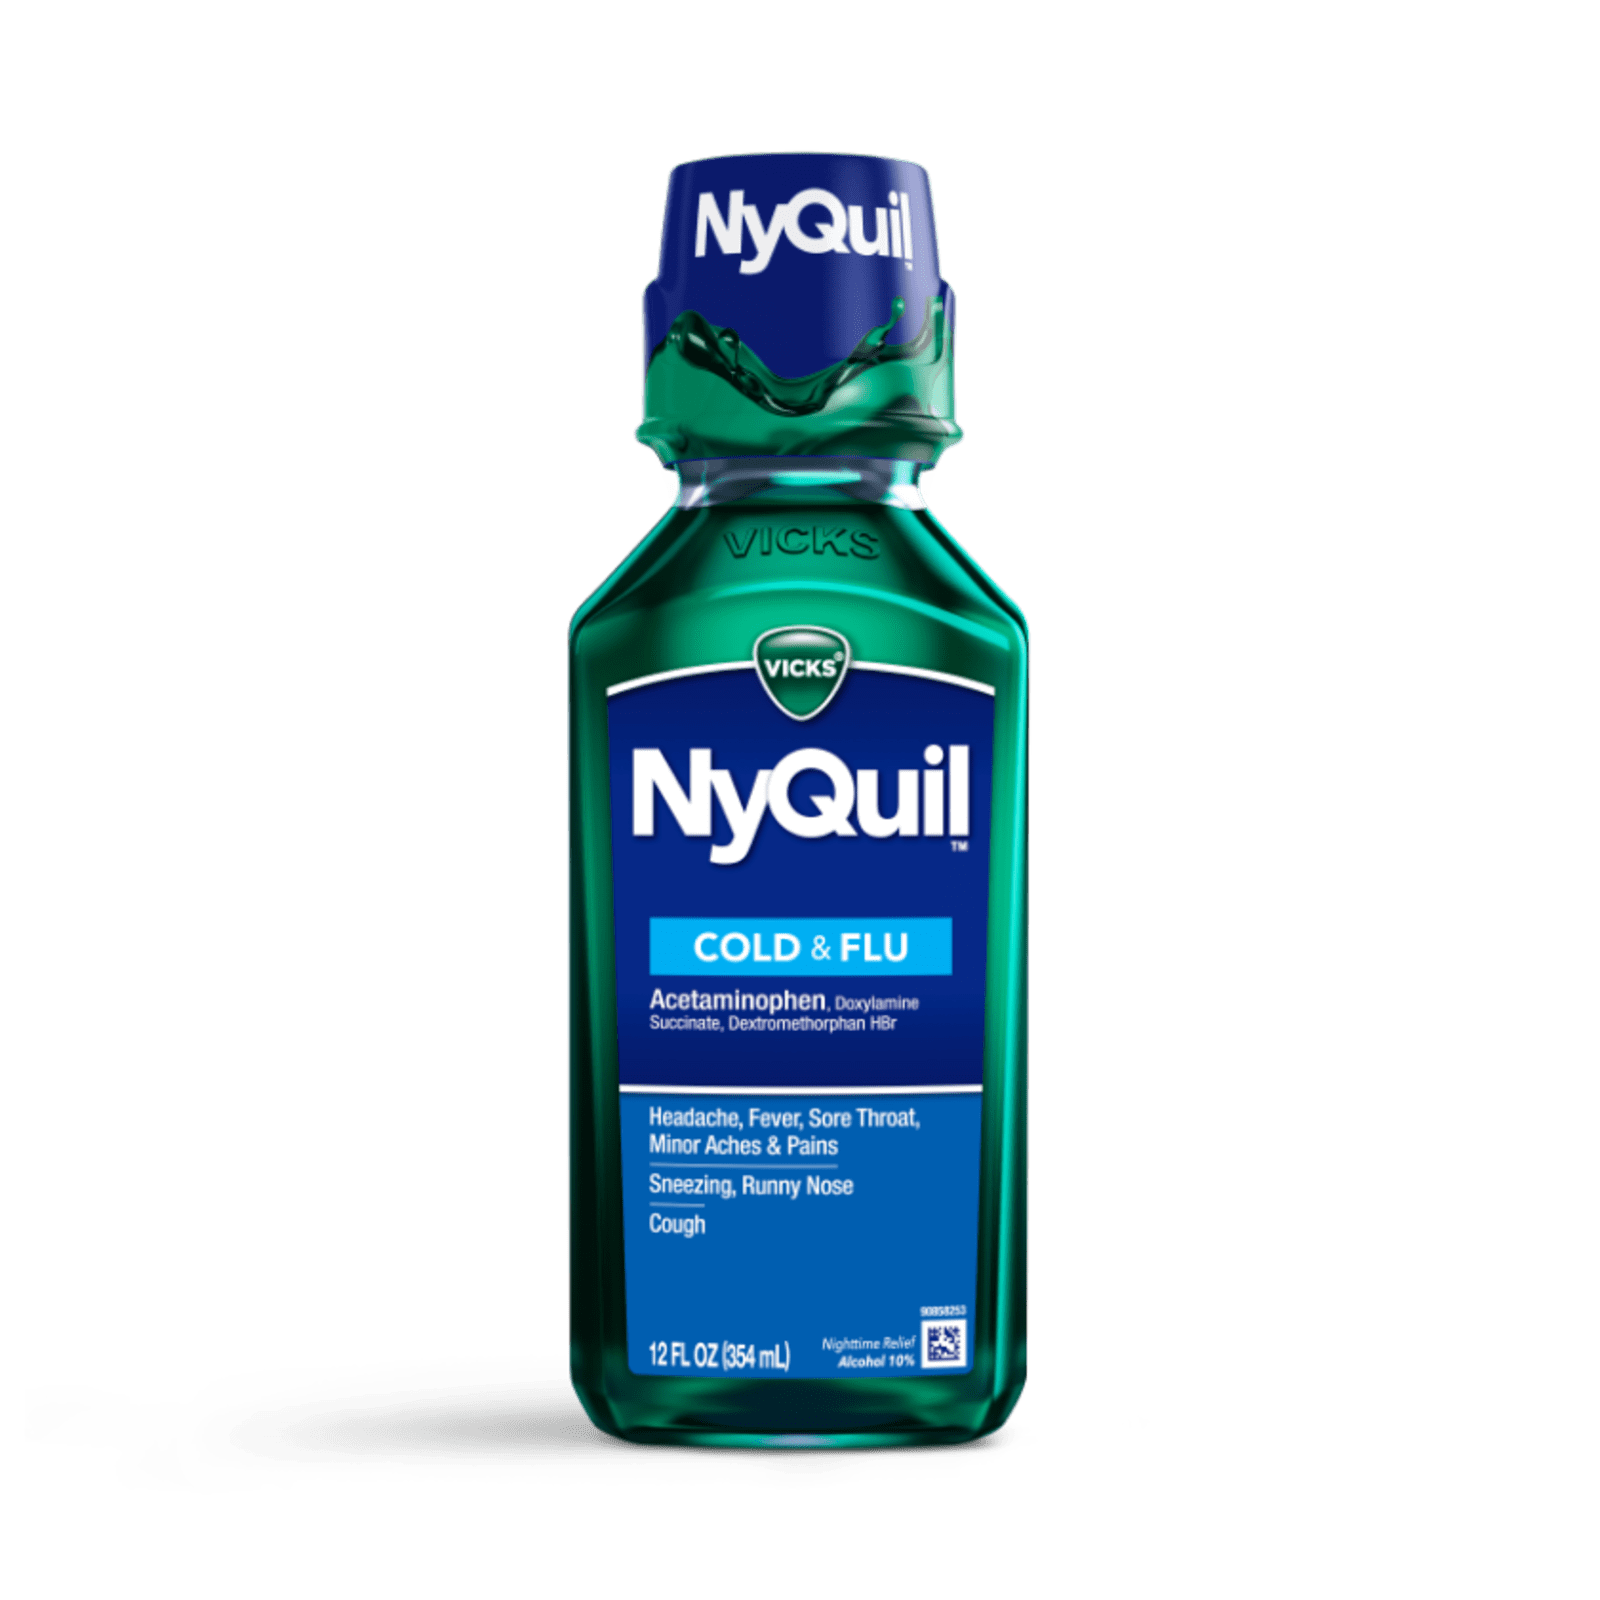 NyQuil™ Cold & Flu Nighttime Relief Liquid